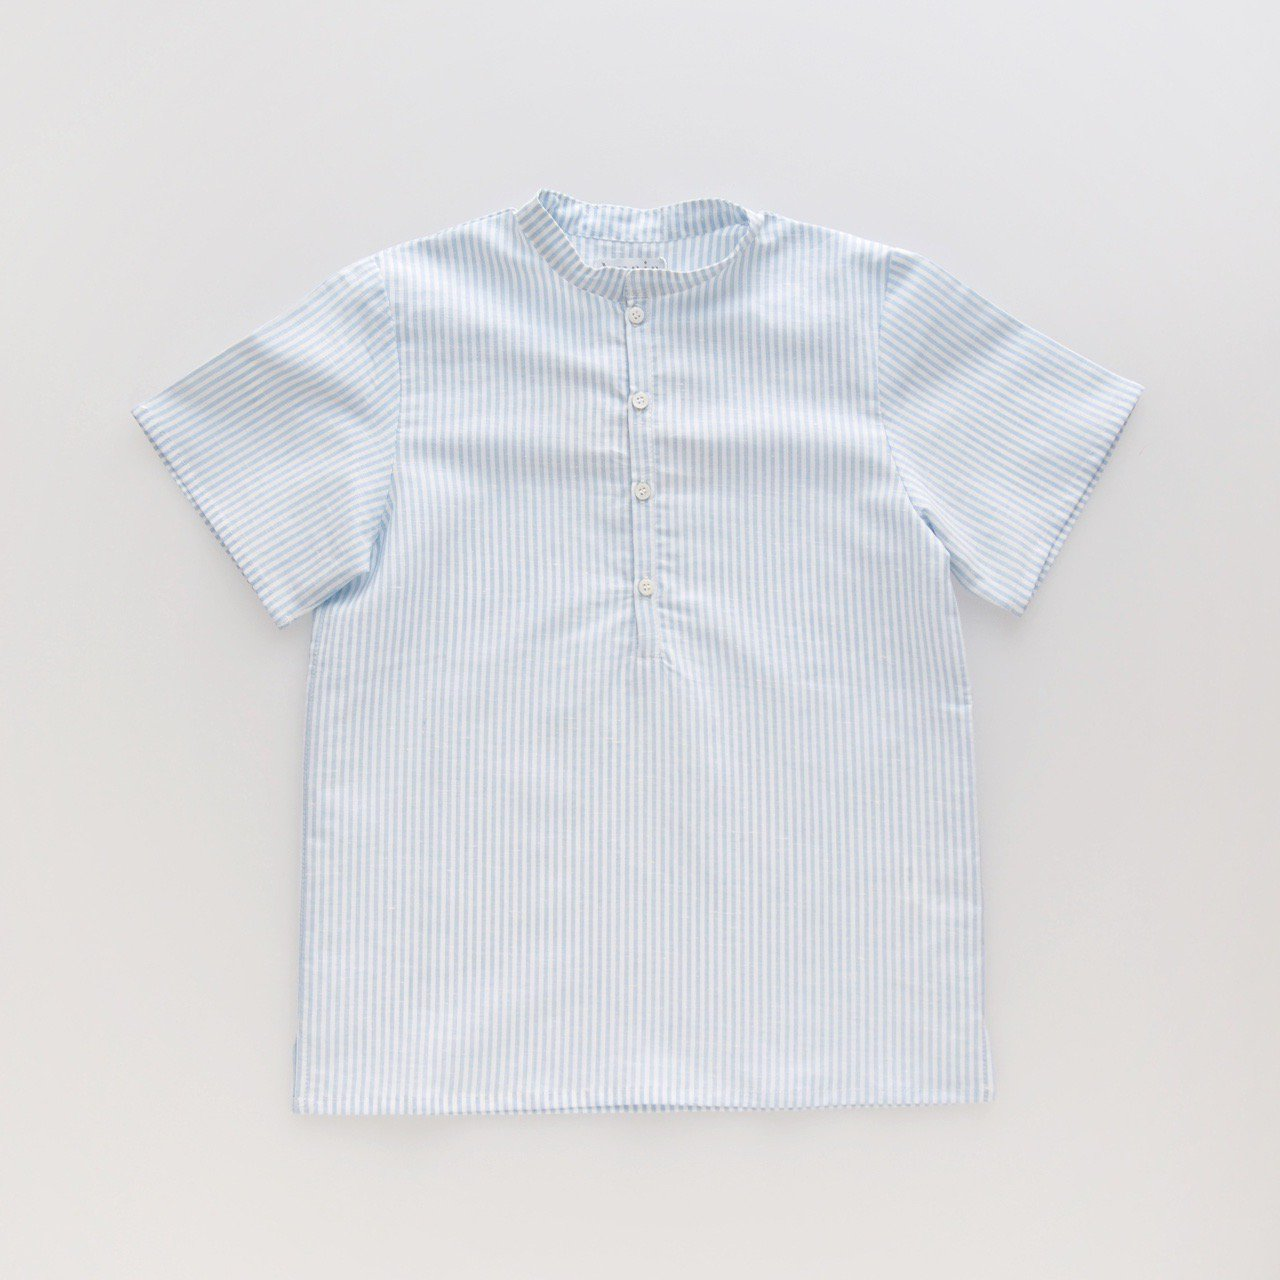 <img class='new_mark_img1' src='https://img.shop-pro.jp/img/new/icons1.gif' style='border:none;display:inline;margin:0px;padding:0px;width:auto;' />Amaia Kids - Preprine shirts (Pale blue stripe)